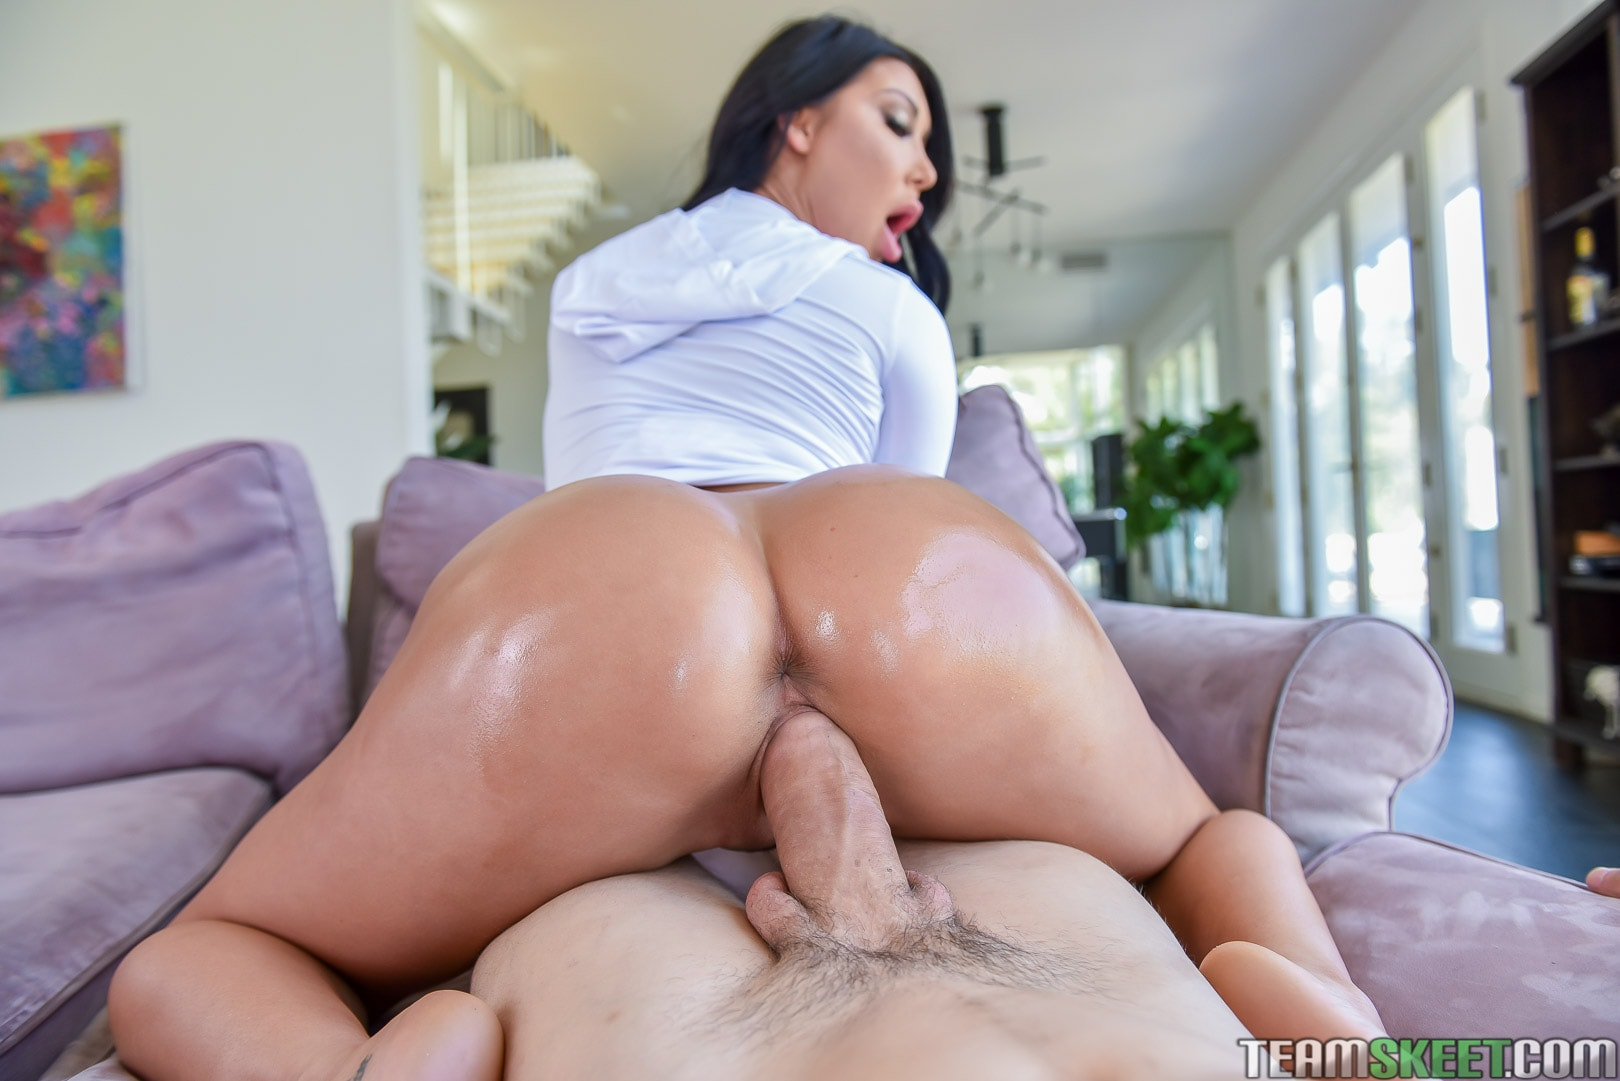 Team Skeet 'Thick Teen Gets The Dick Dream' starring August Taylor (Photo 72)